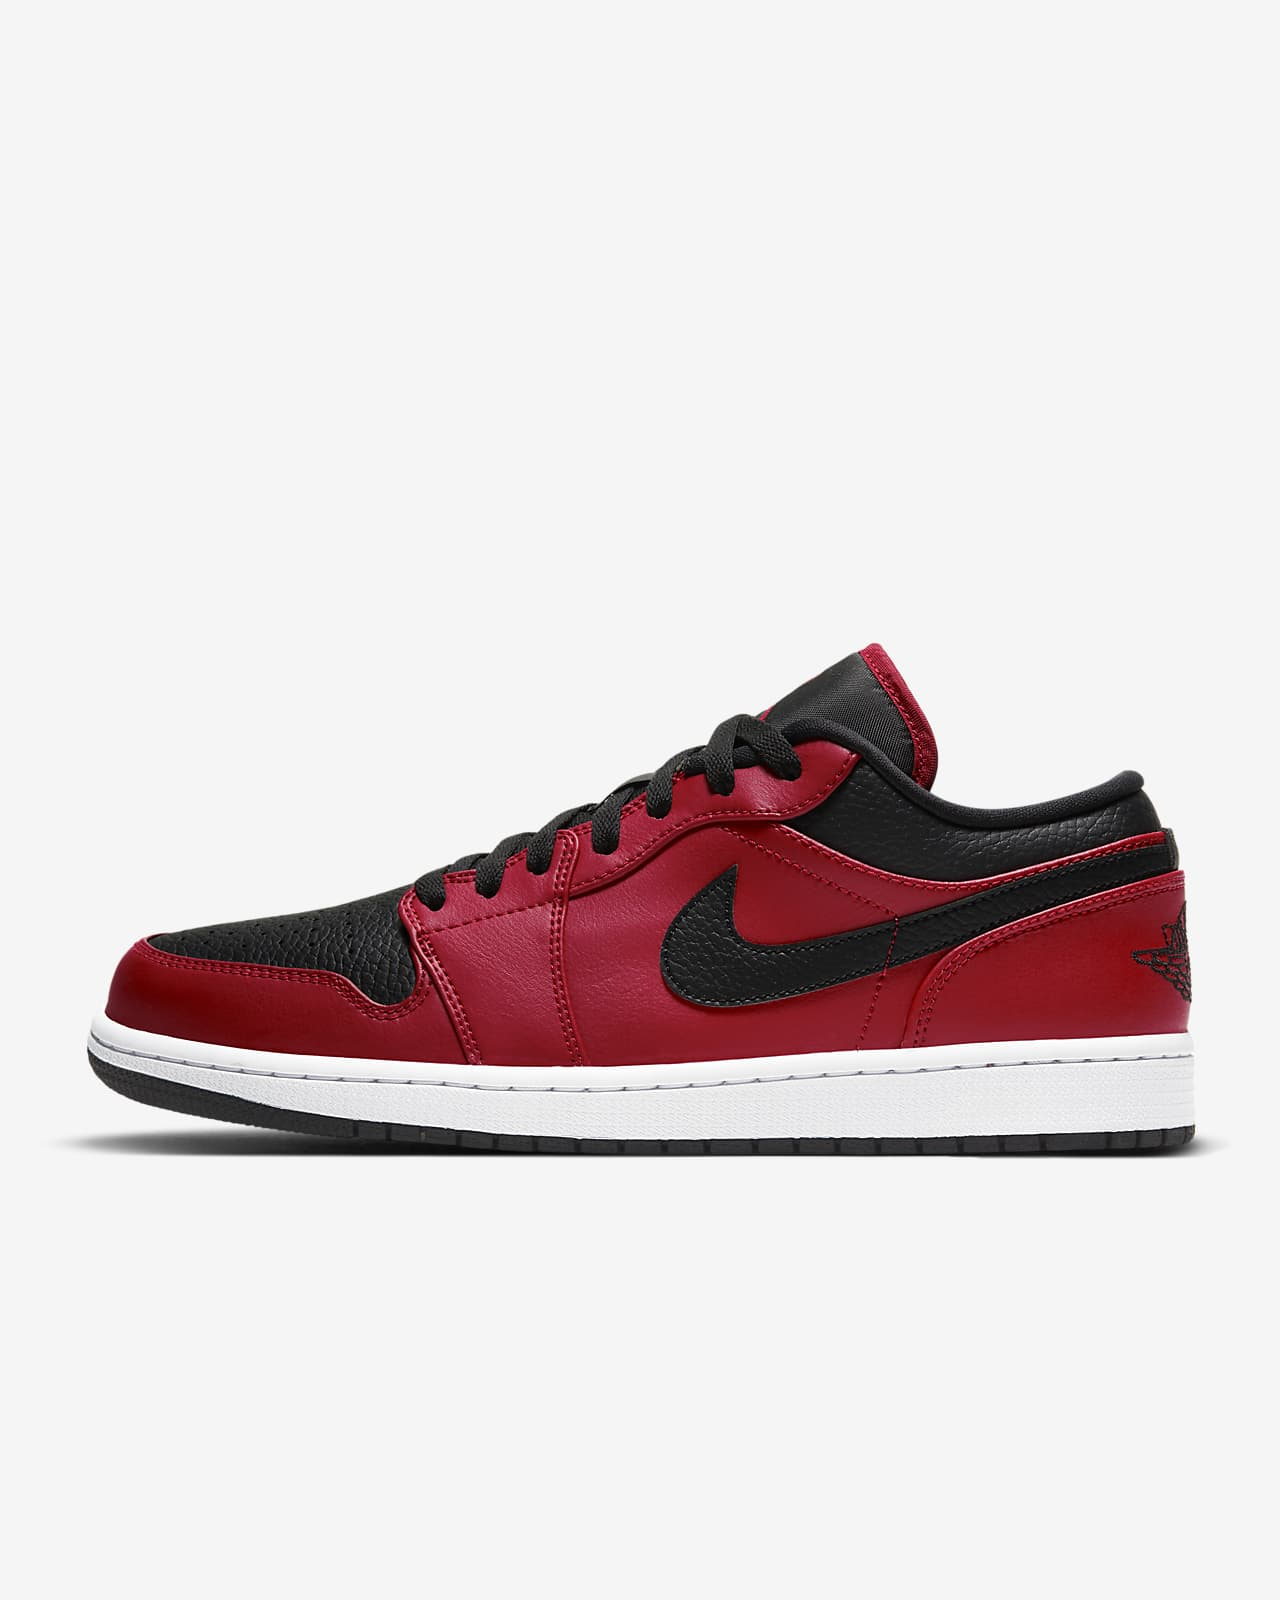 Sko Air Jordan 1 Low